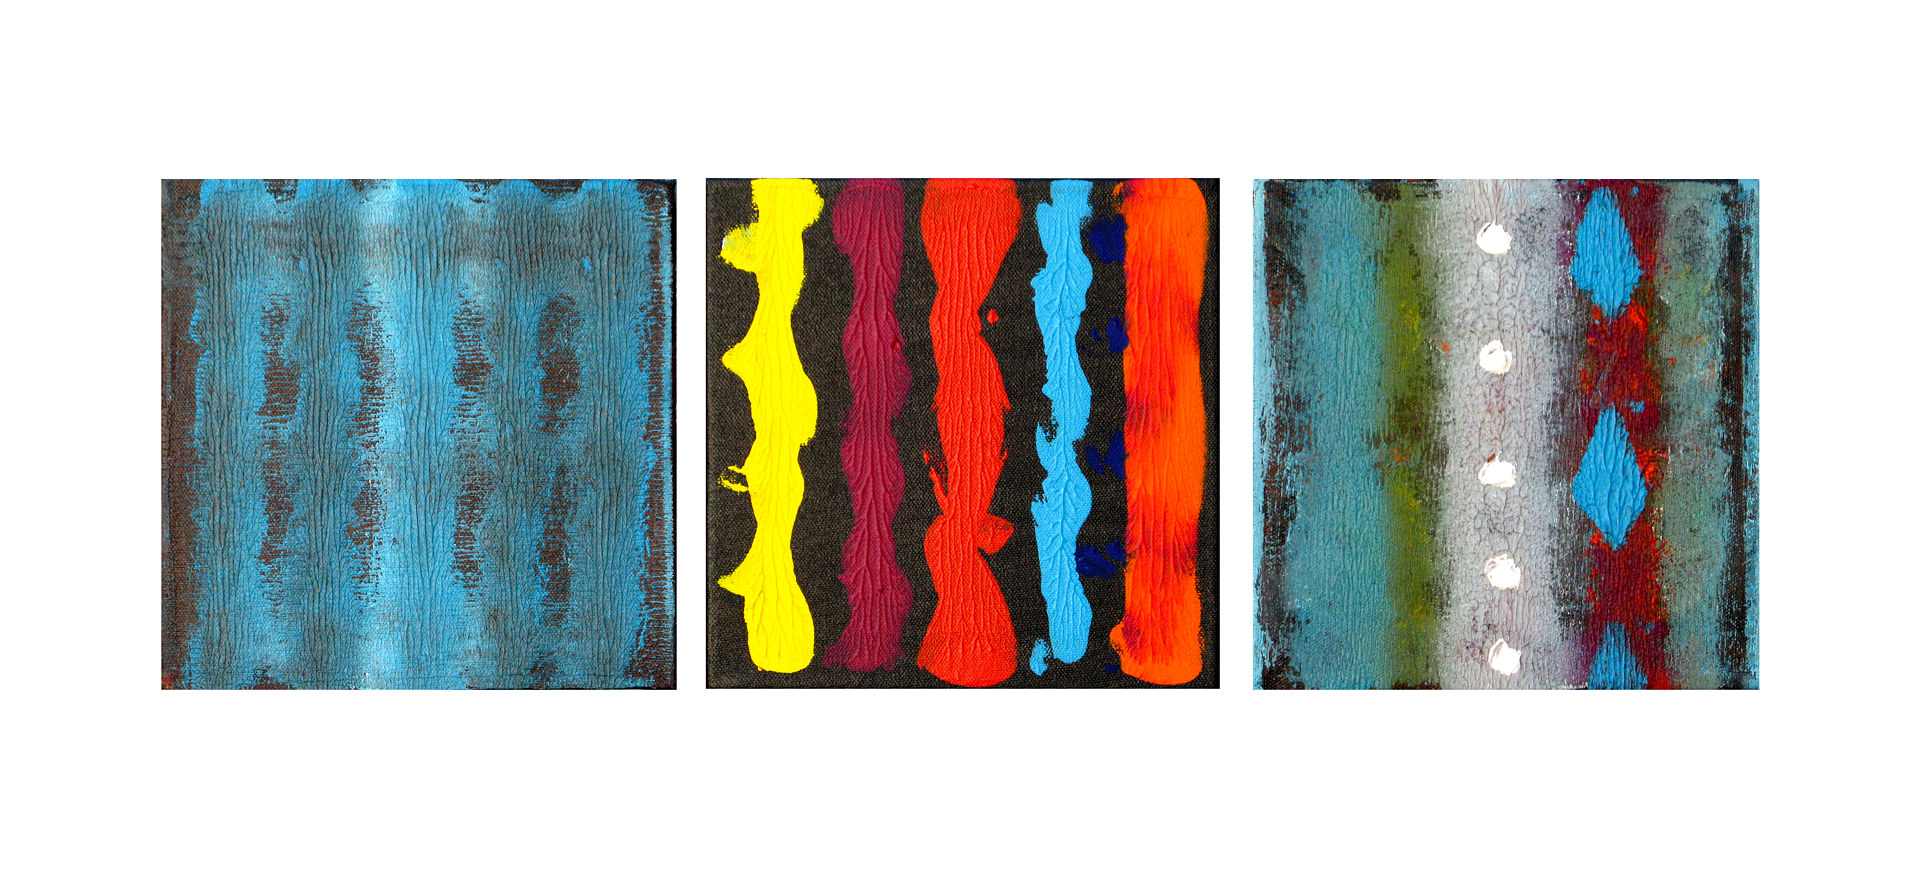 Acrylic painting Decorative Trio, 8x8 inches each by Hooshang Khorasani